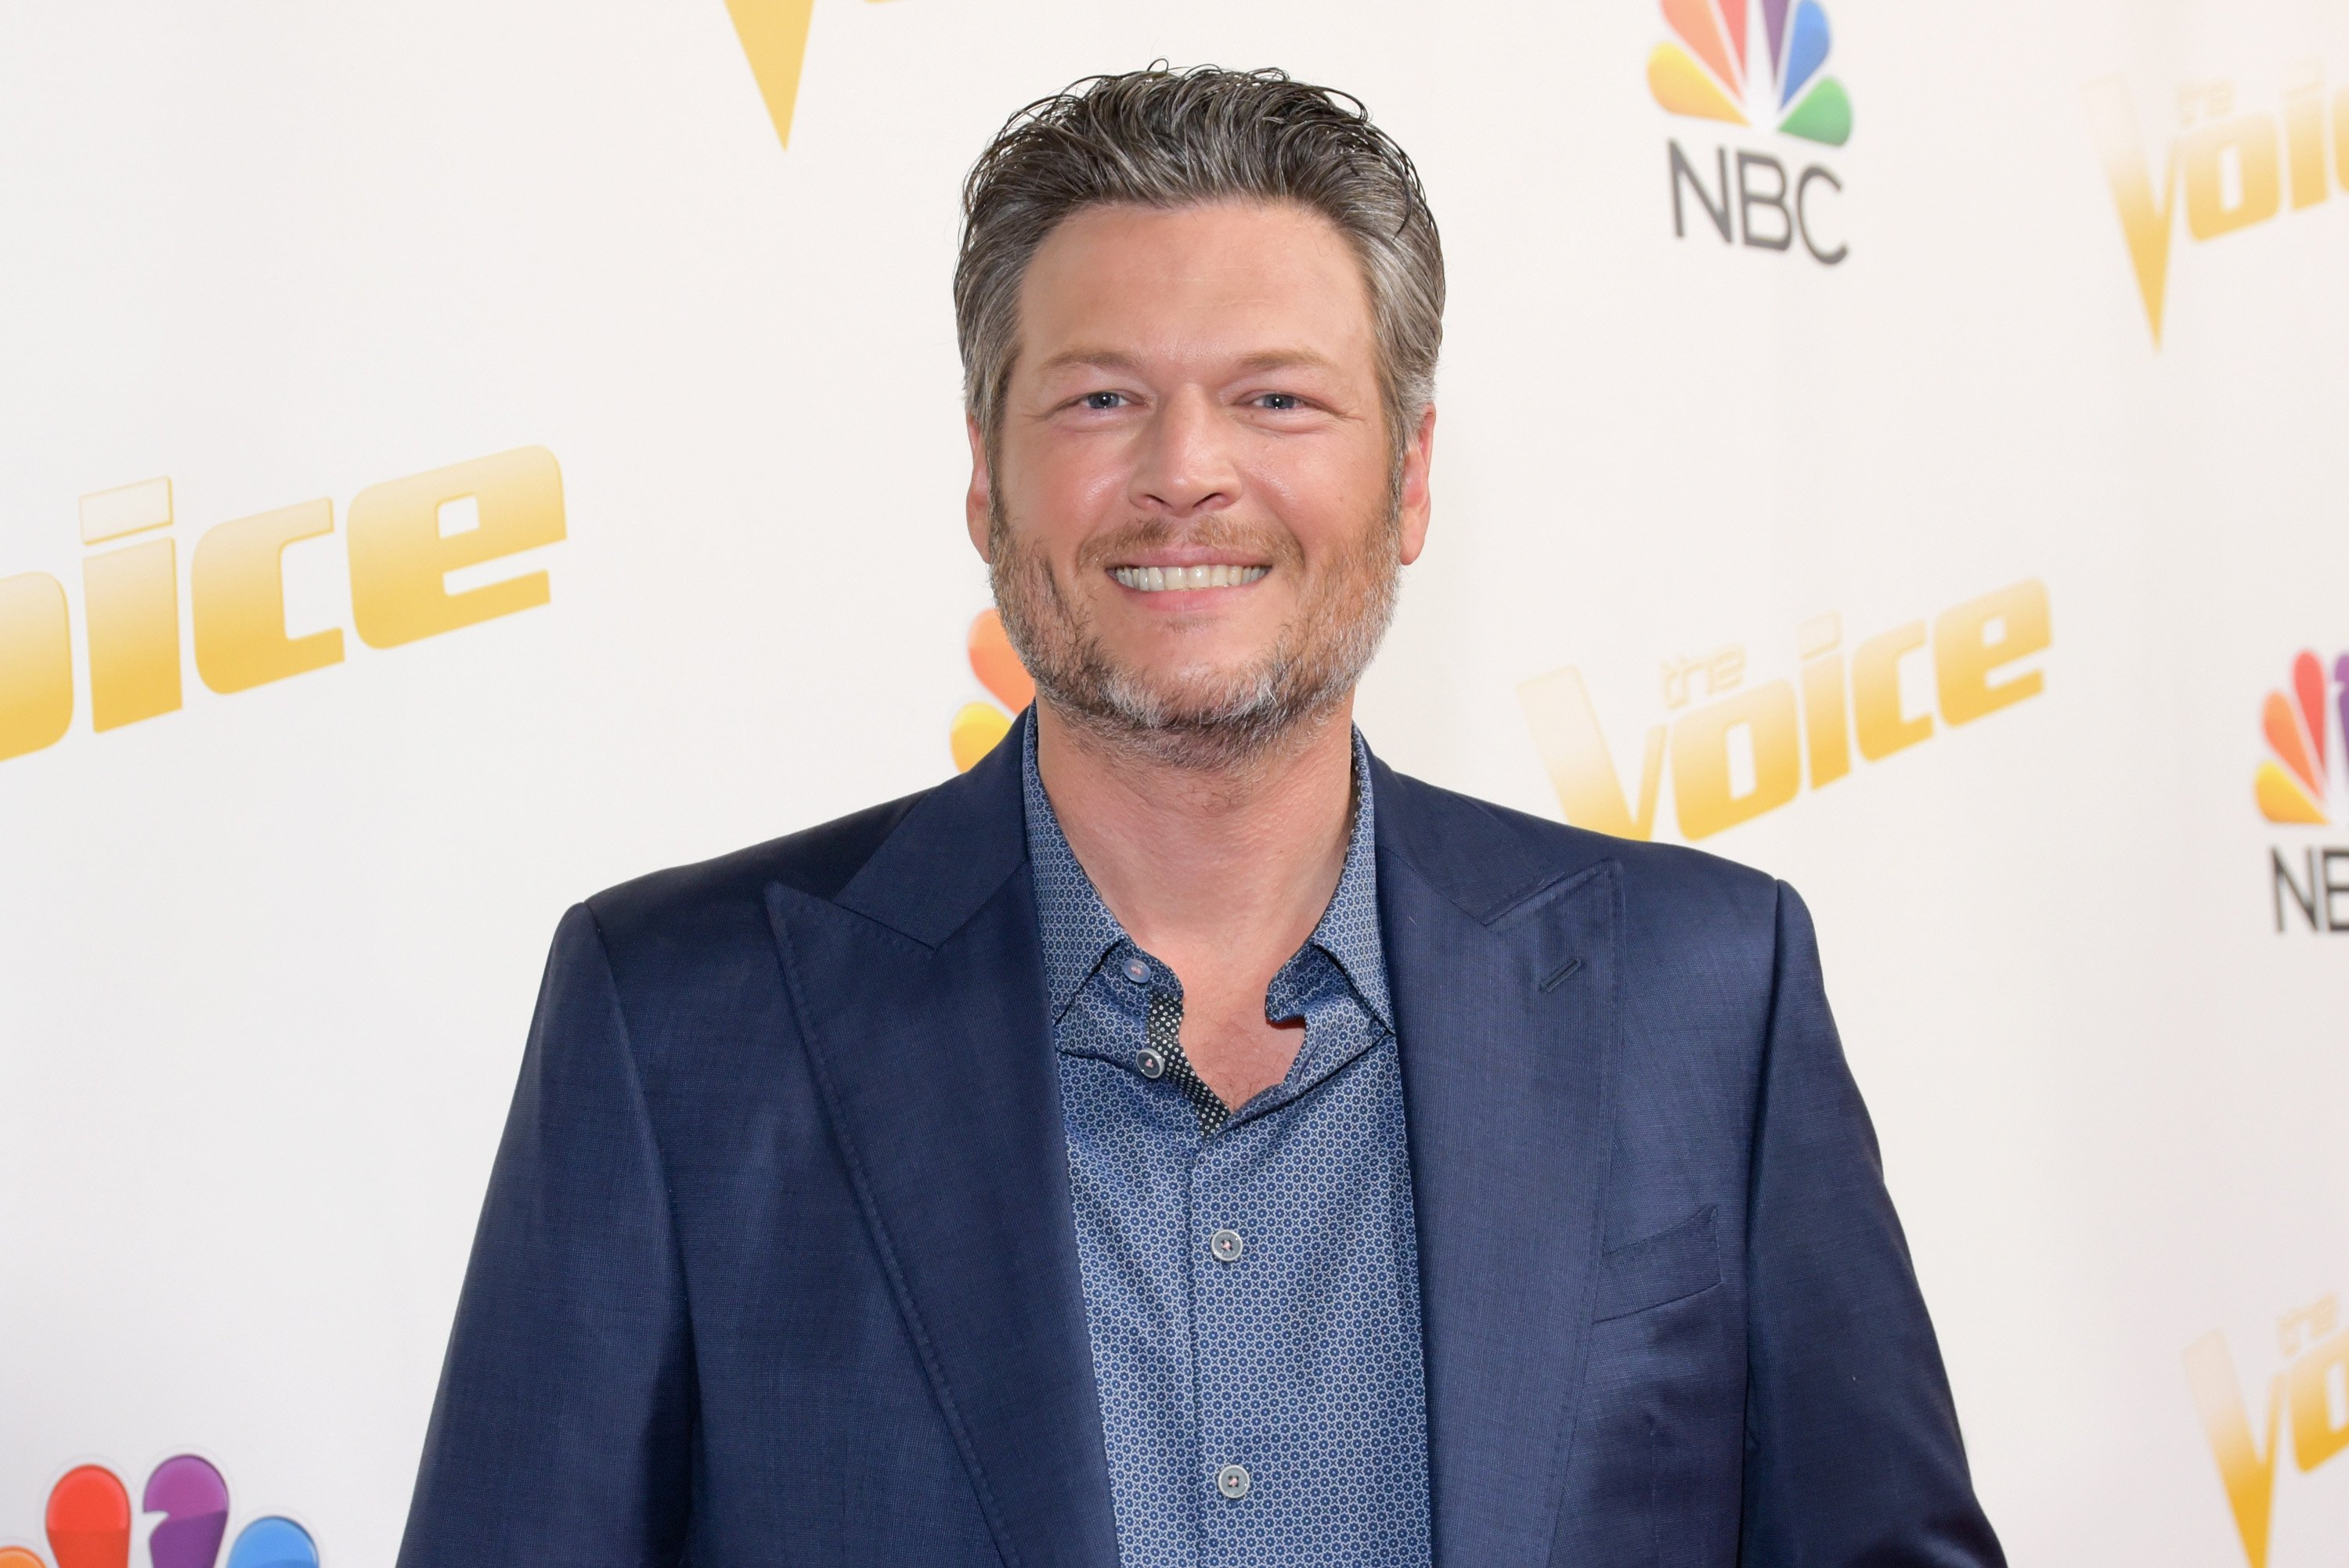 Blake Shelton attends NBC's 'The Voice' Season 14 taping on April 23, 2018. | Photo: GettyImages